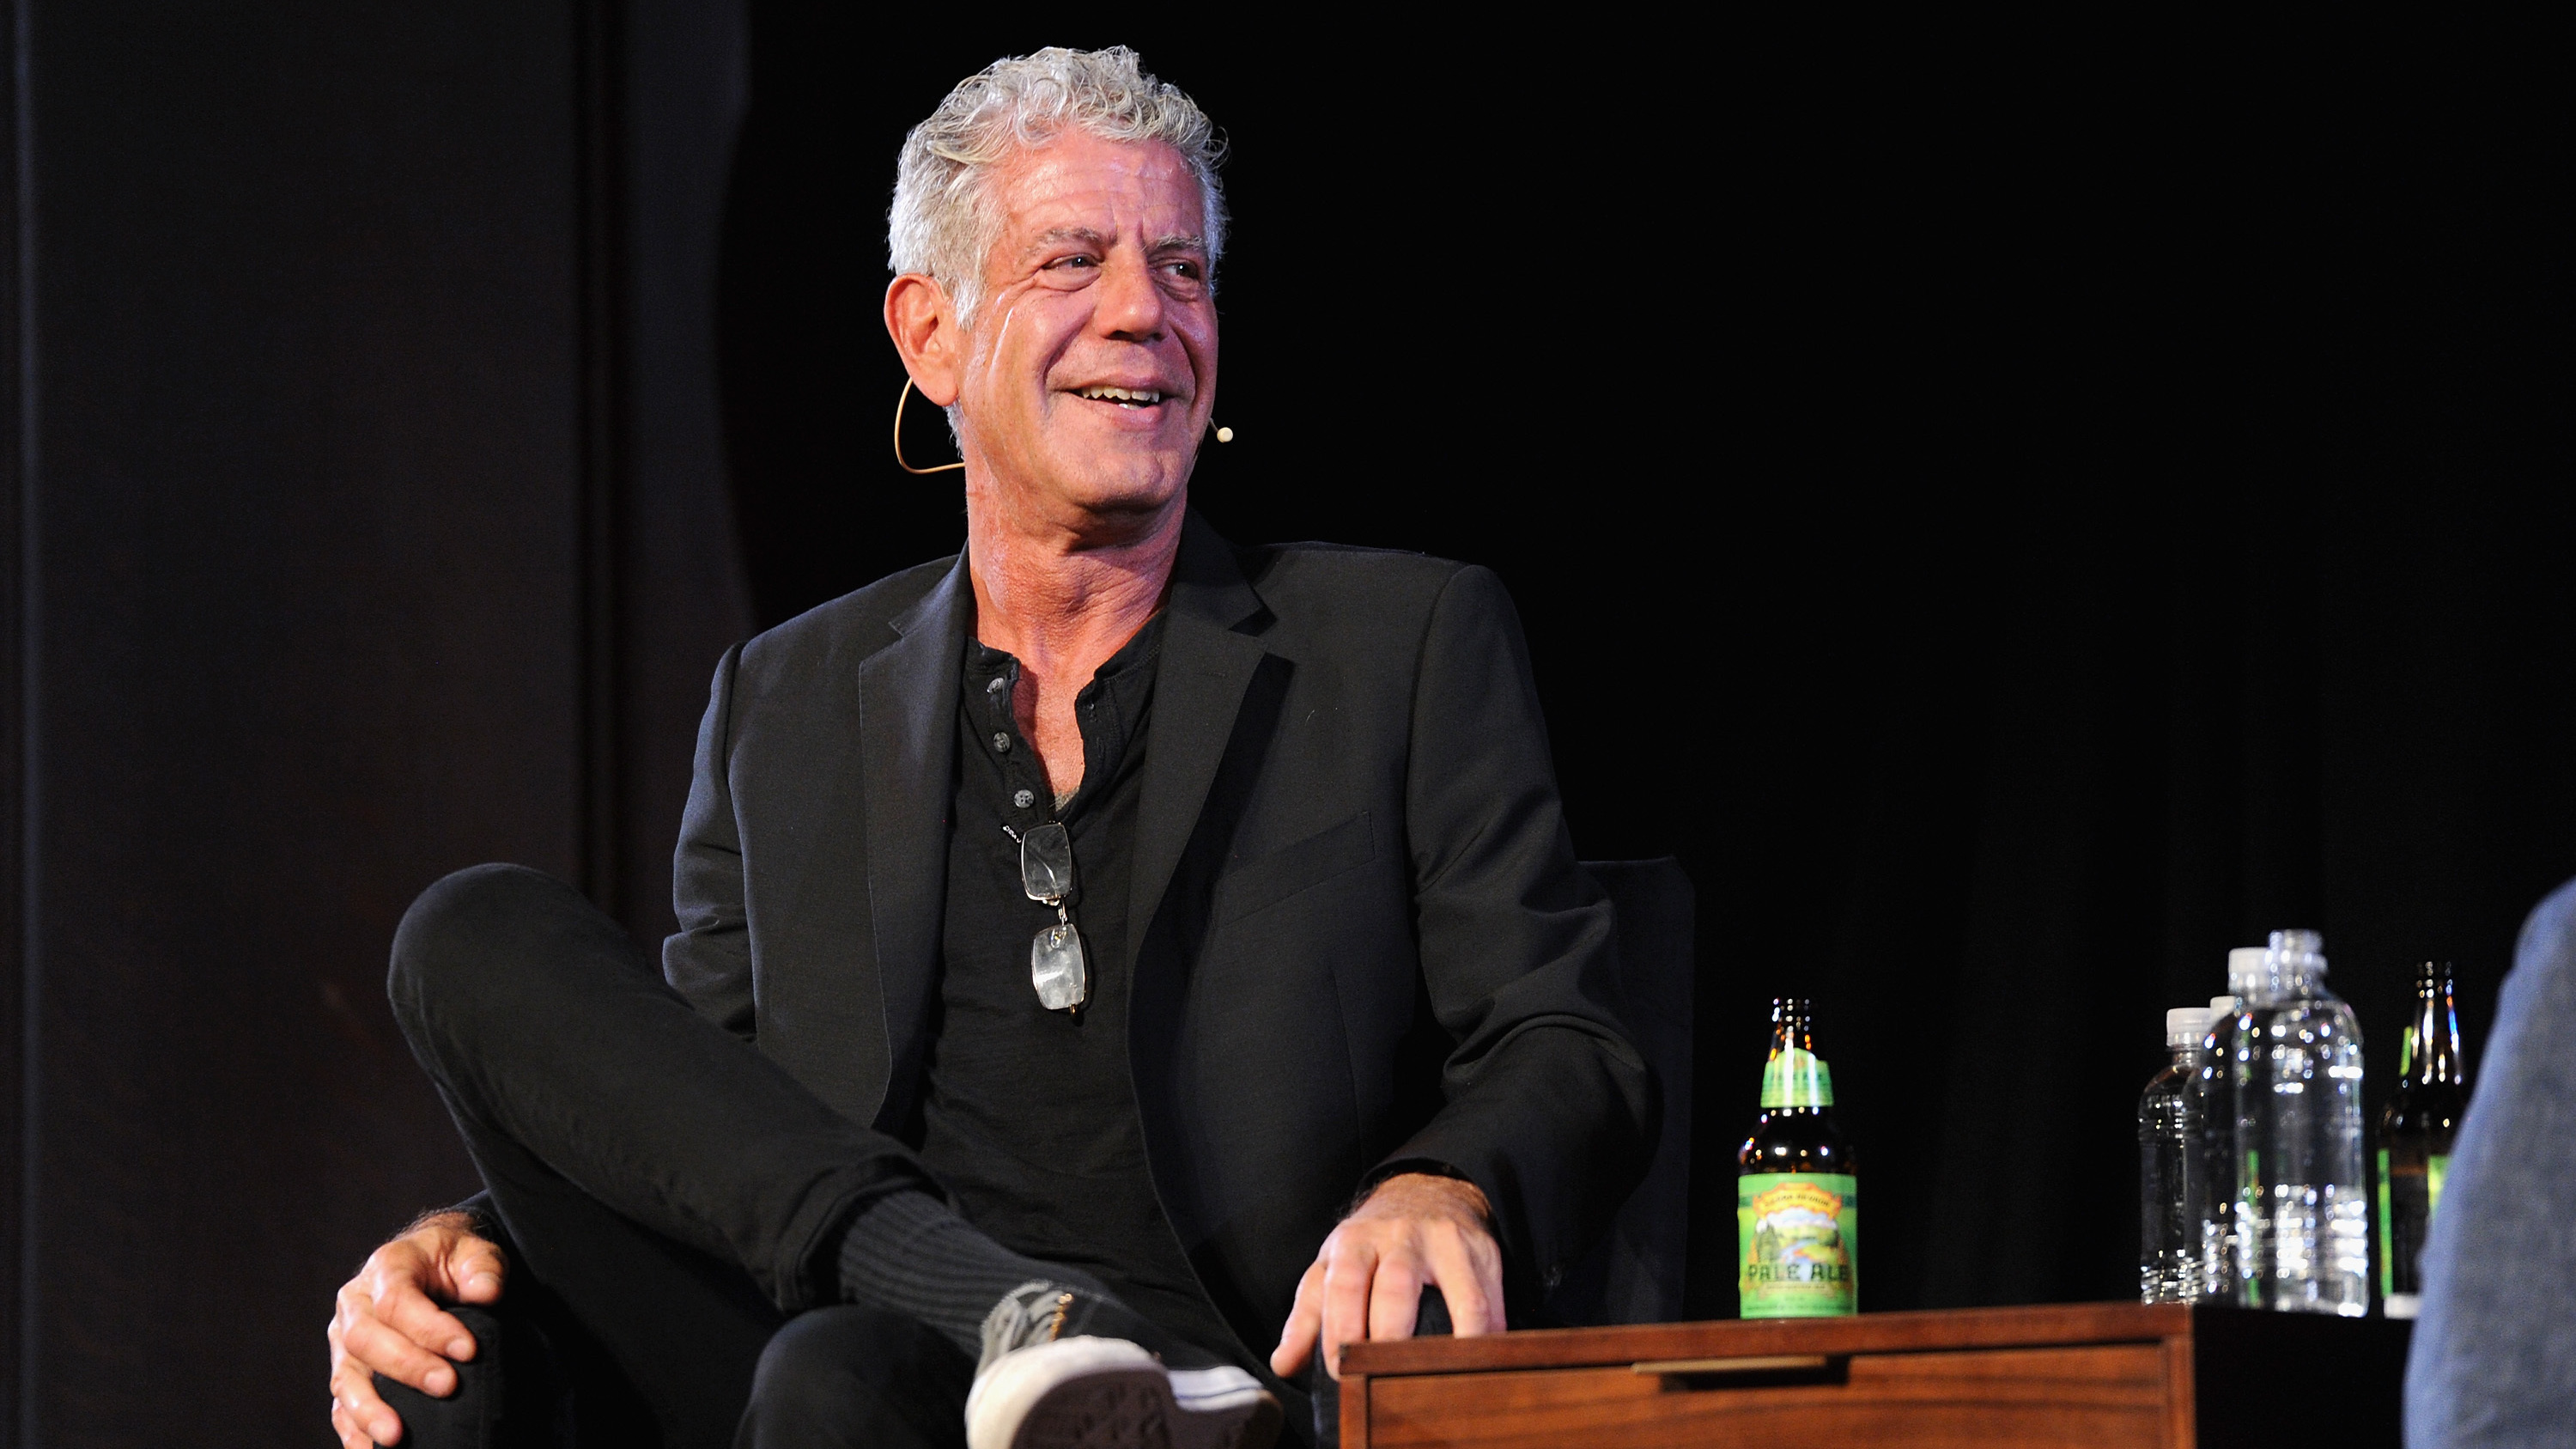 Remembering Anthony Bourdain's Love For Music